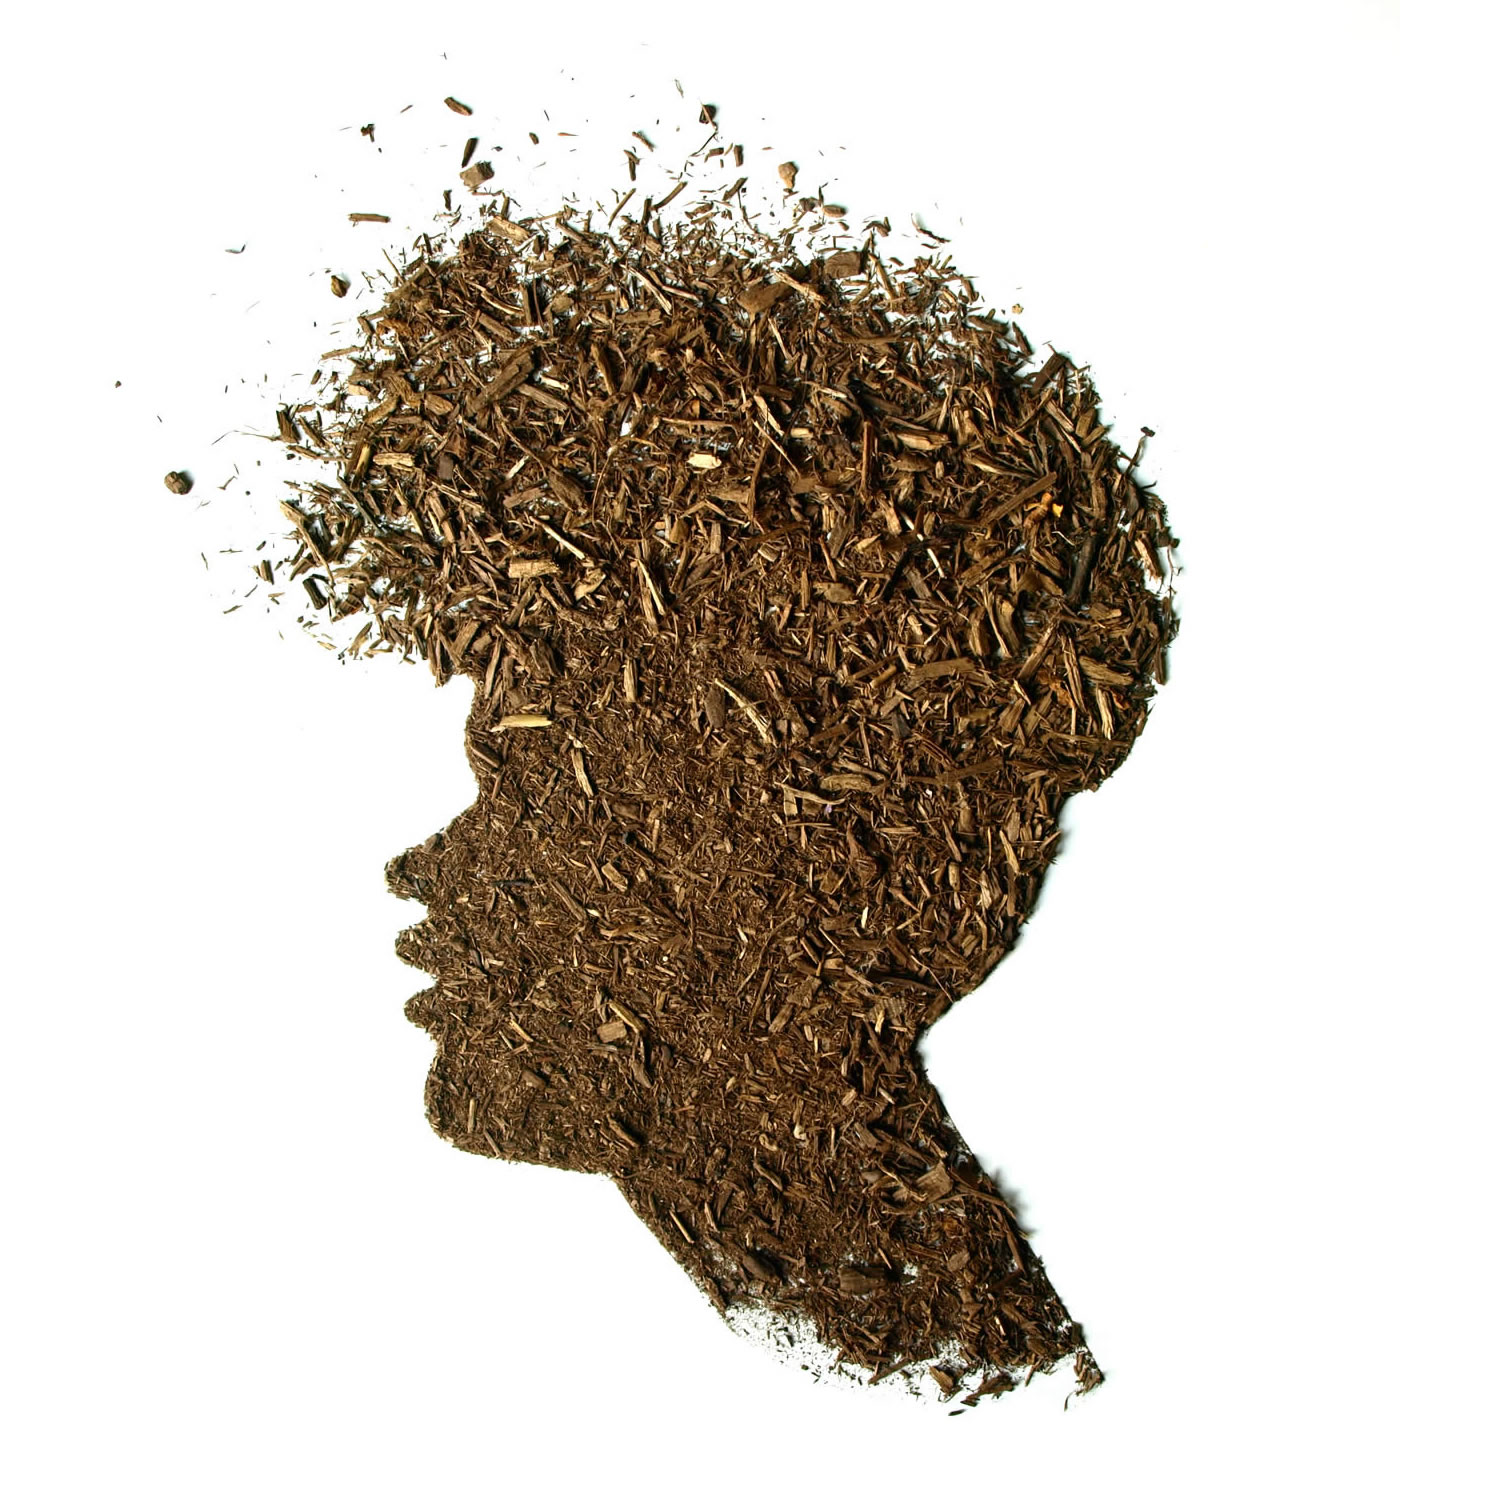 portrait made with soil by sarah rosado